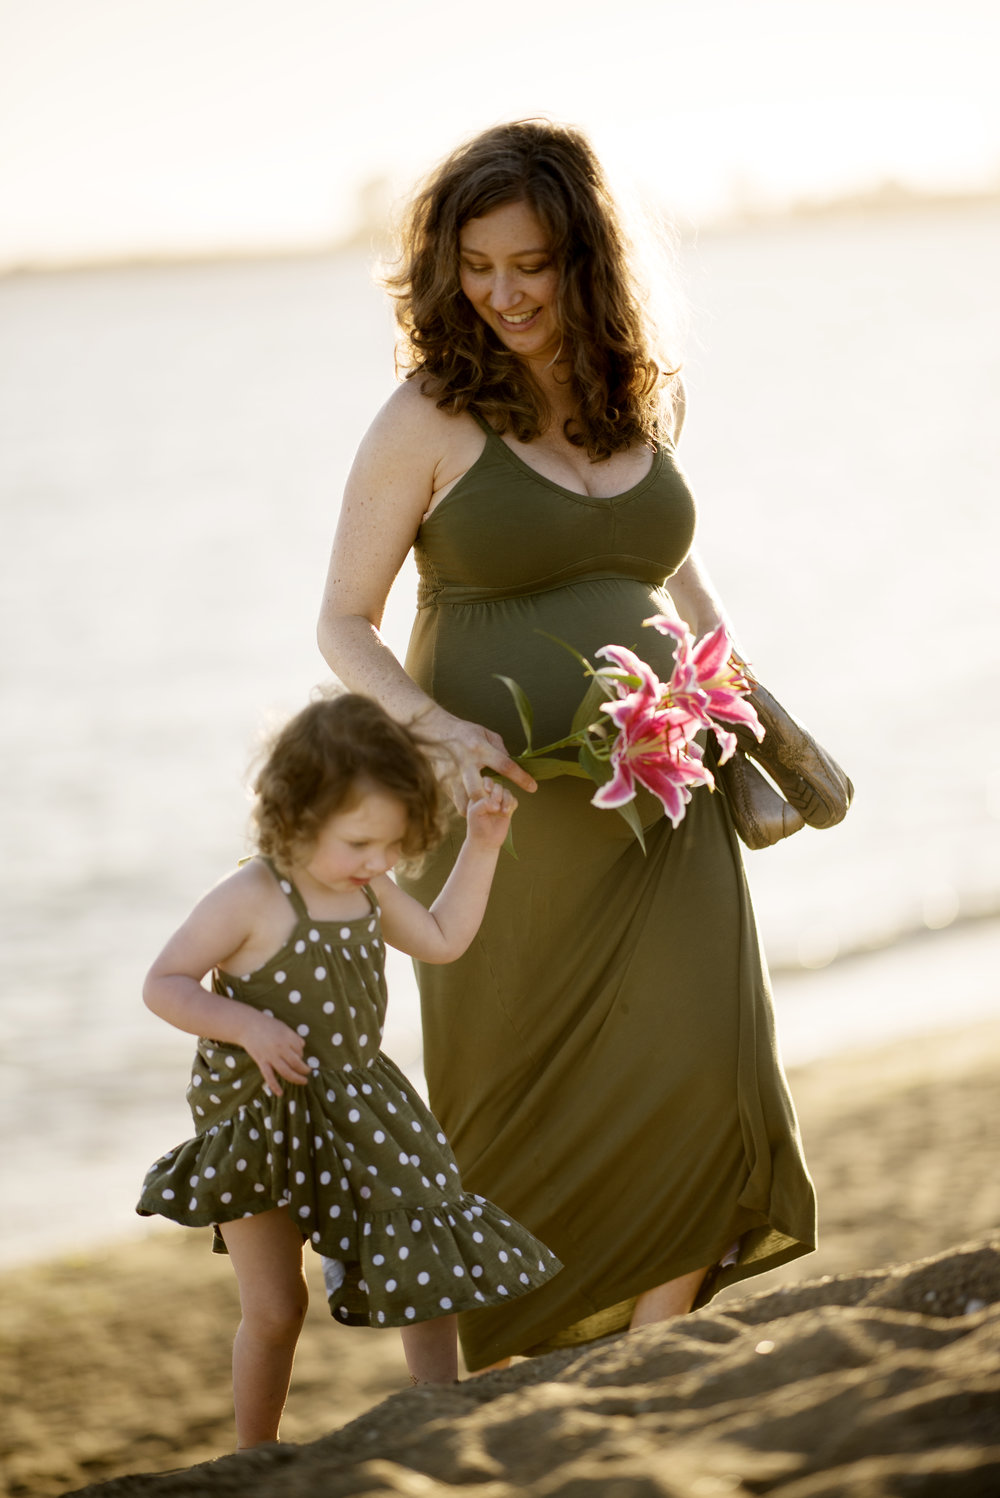 Lets_Spread_Beauty_Photography_Maternity20150620_0007.jpg